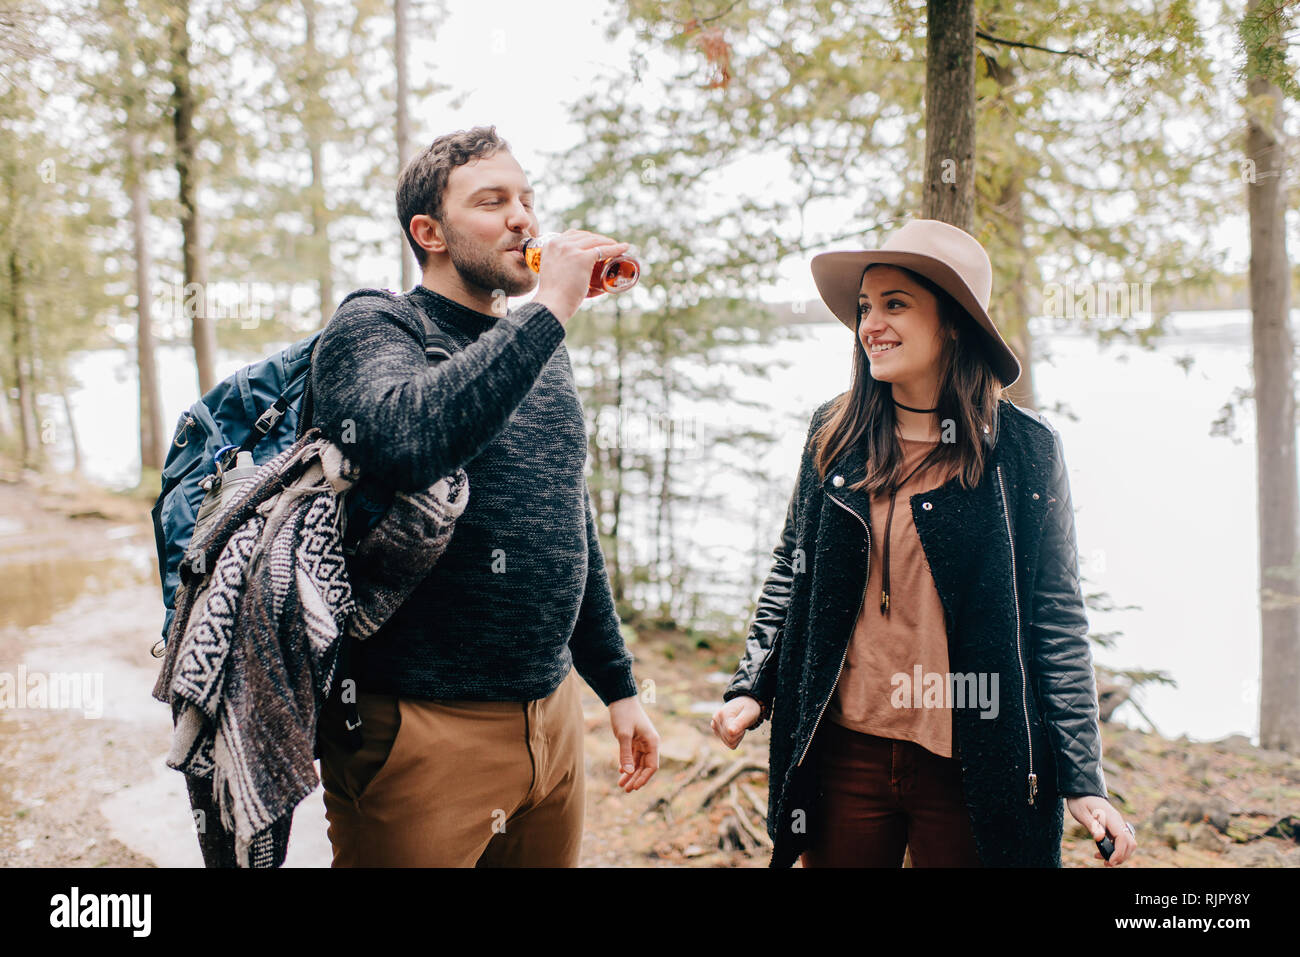 Couple quenching thirst during hike in forest, Tobermory, Canada - Stock Image